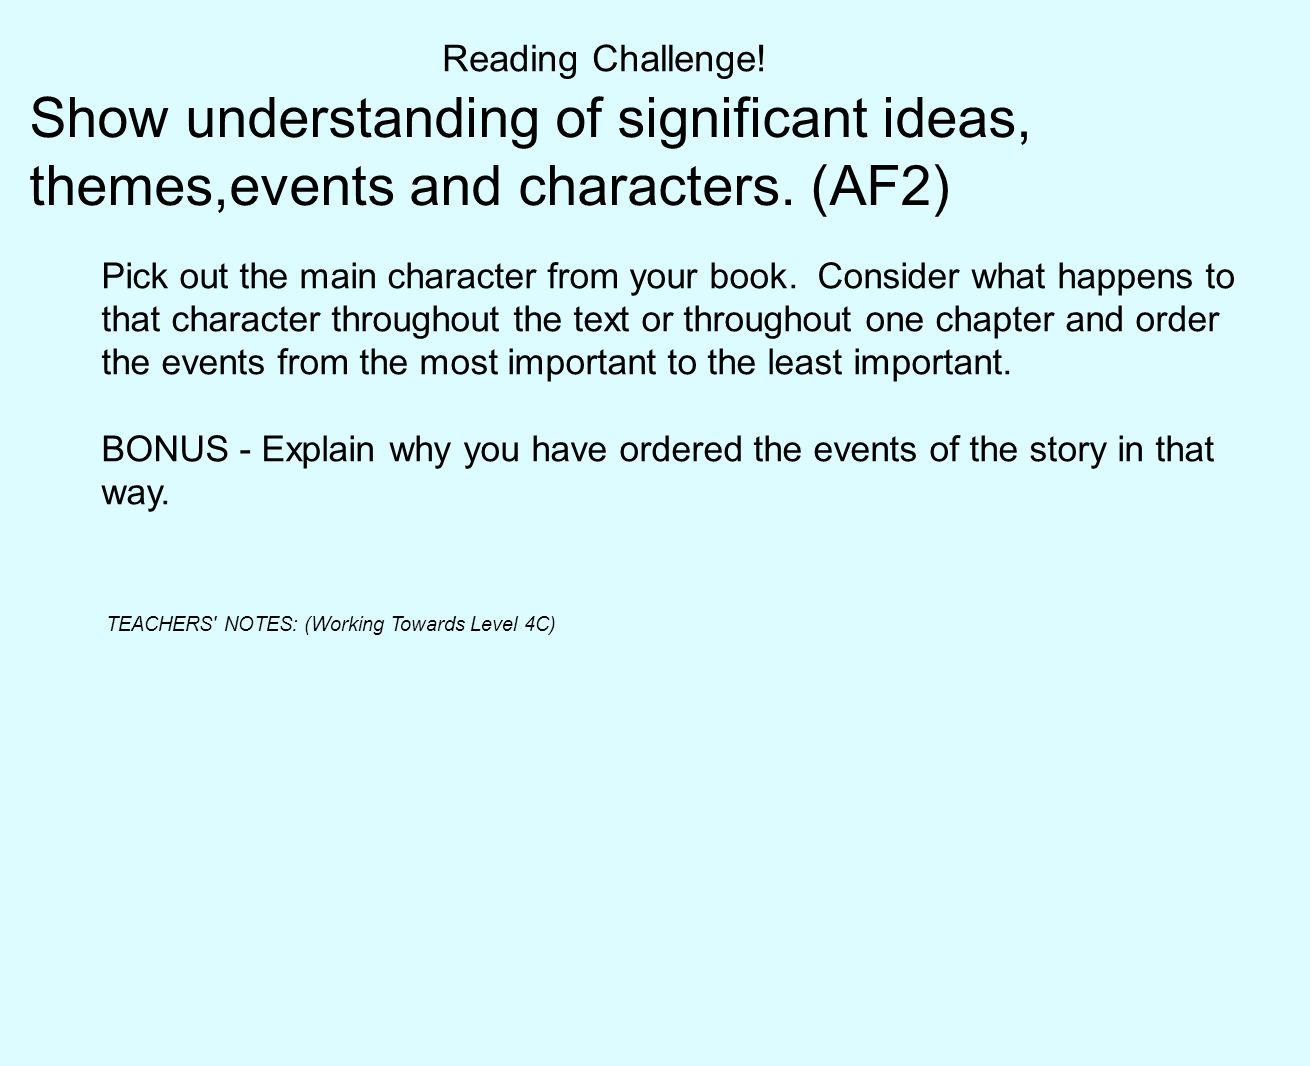 Reading Challenge! Show understanding of significant ideas, themes,events and characters. (AF2)